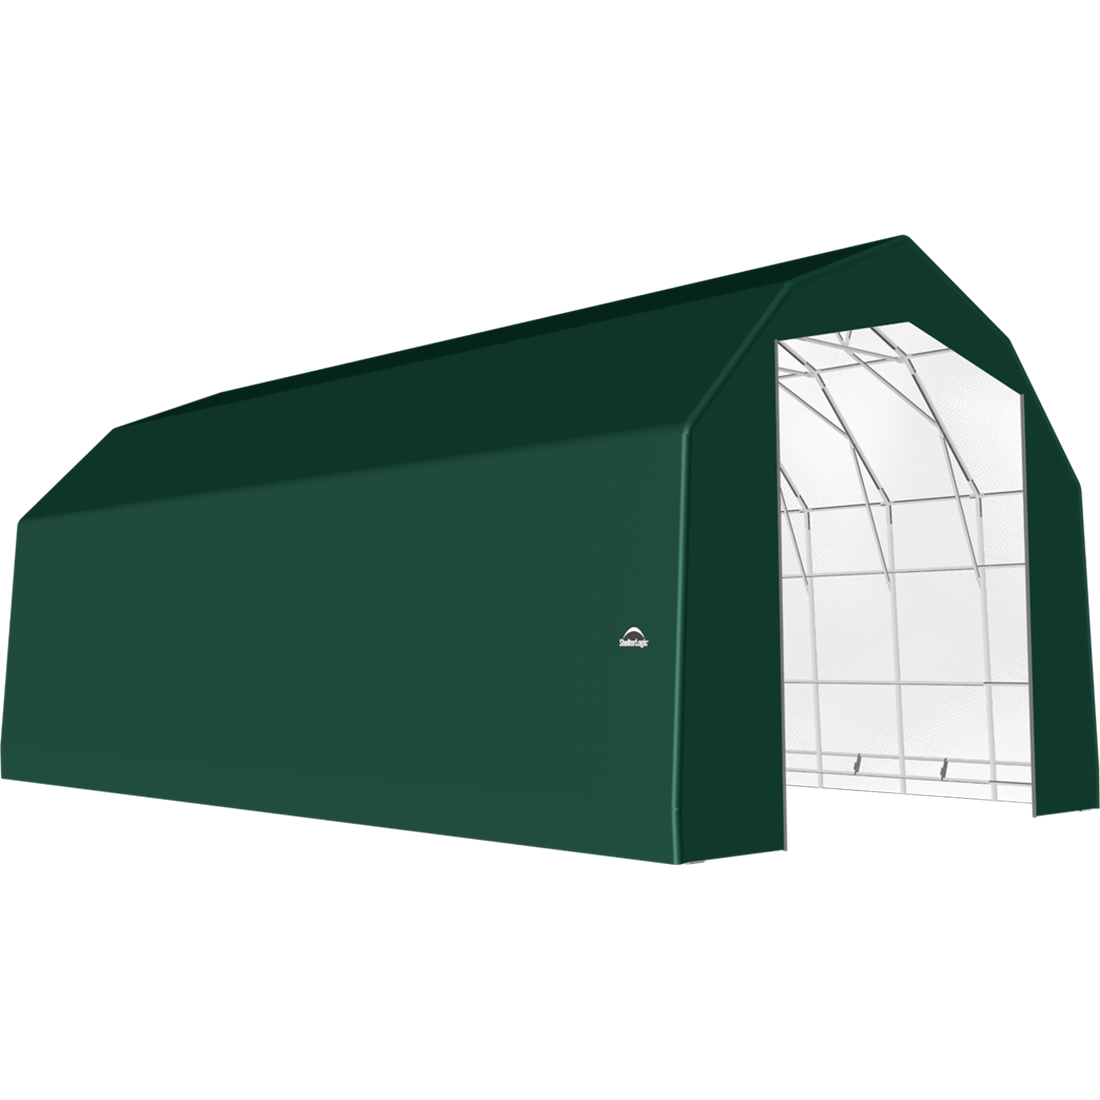 ShelterTech SP Series Barn Shelter, 25 ft. x 48 ft. x 20 ft. Heavy Duty PVC 14.5 oz. Green